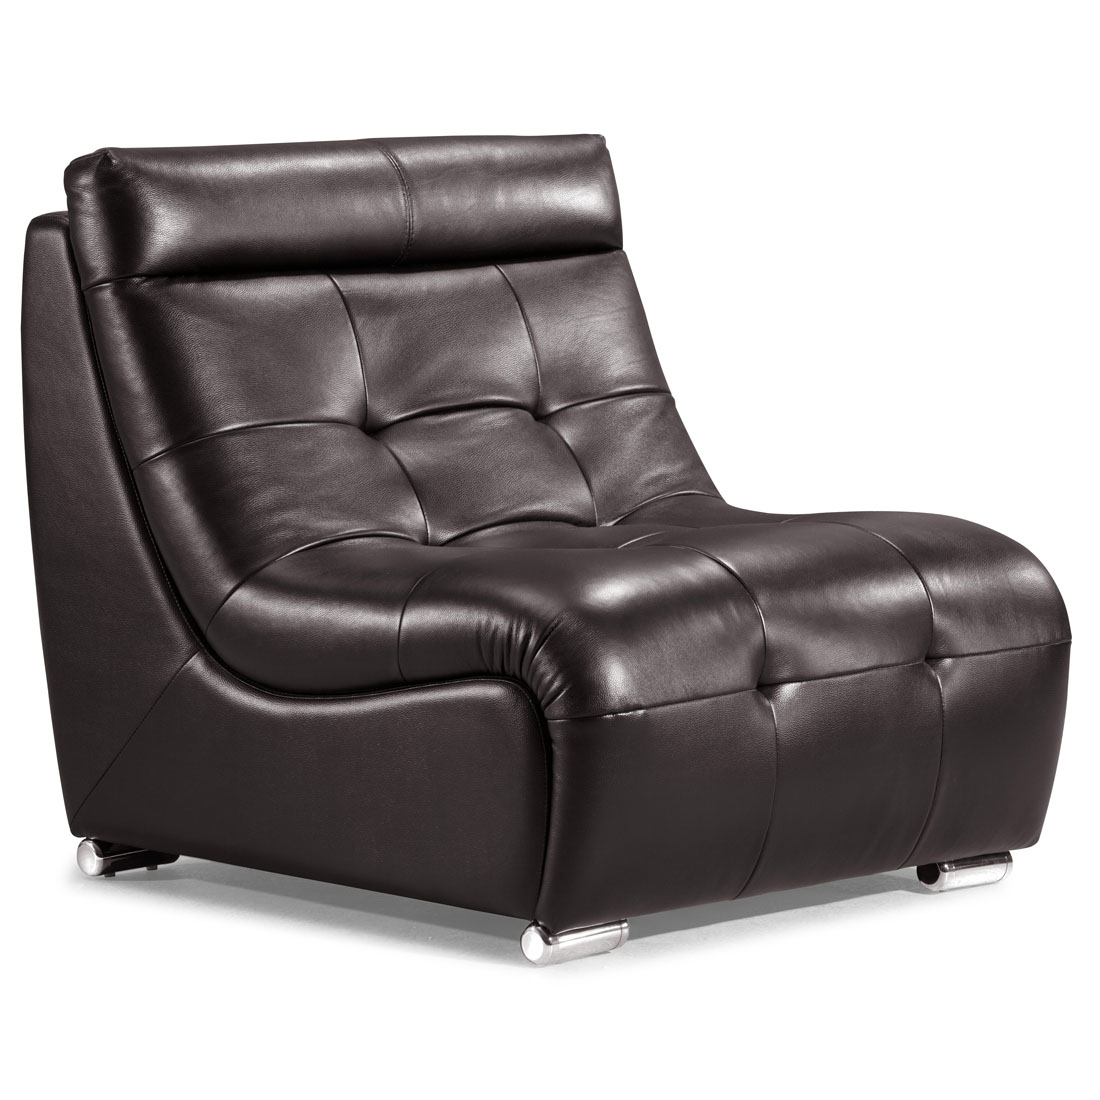 Leather sofa designs single best design home for Chair design leather